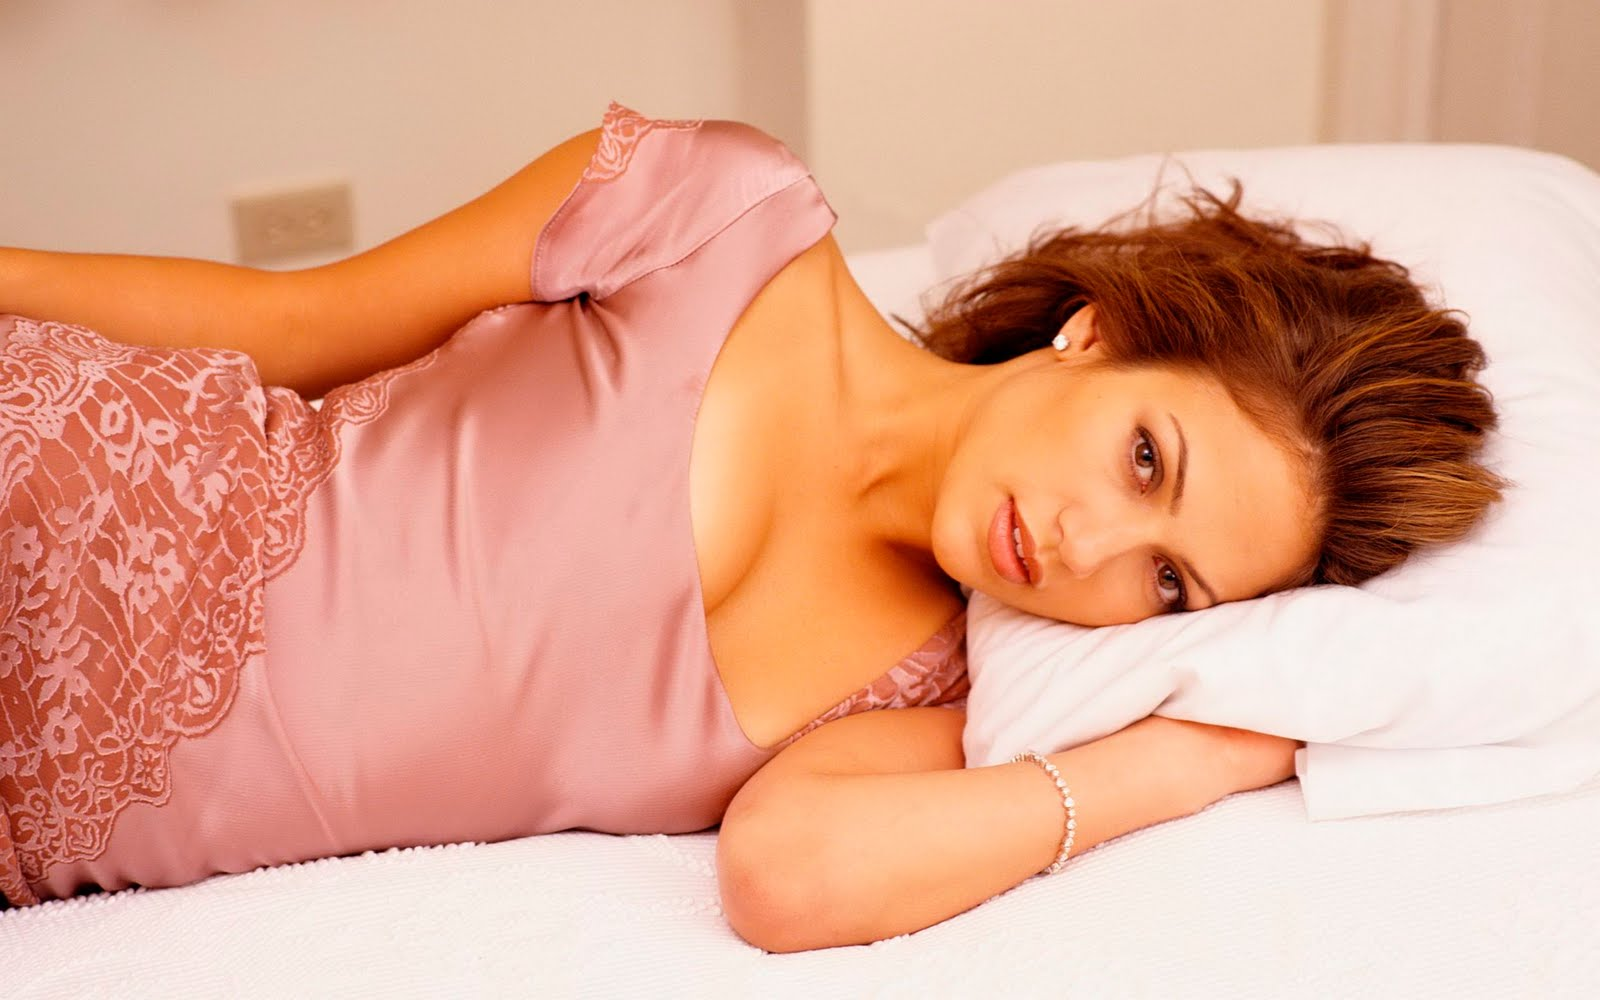 hot girl on bed - photo #26